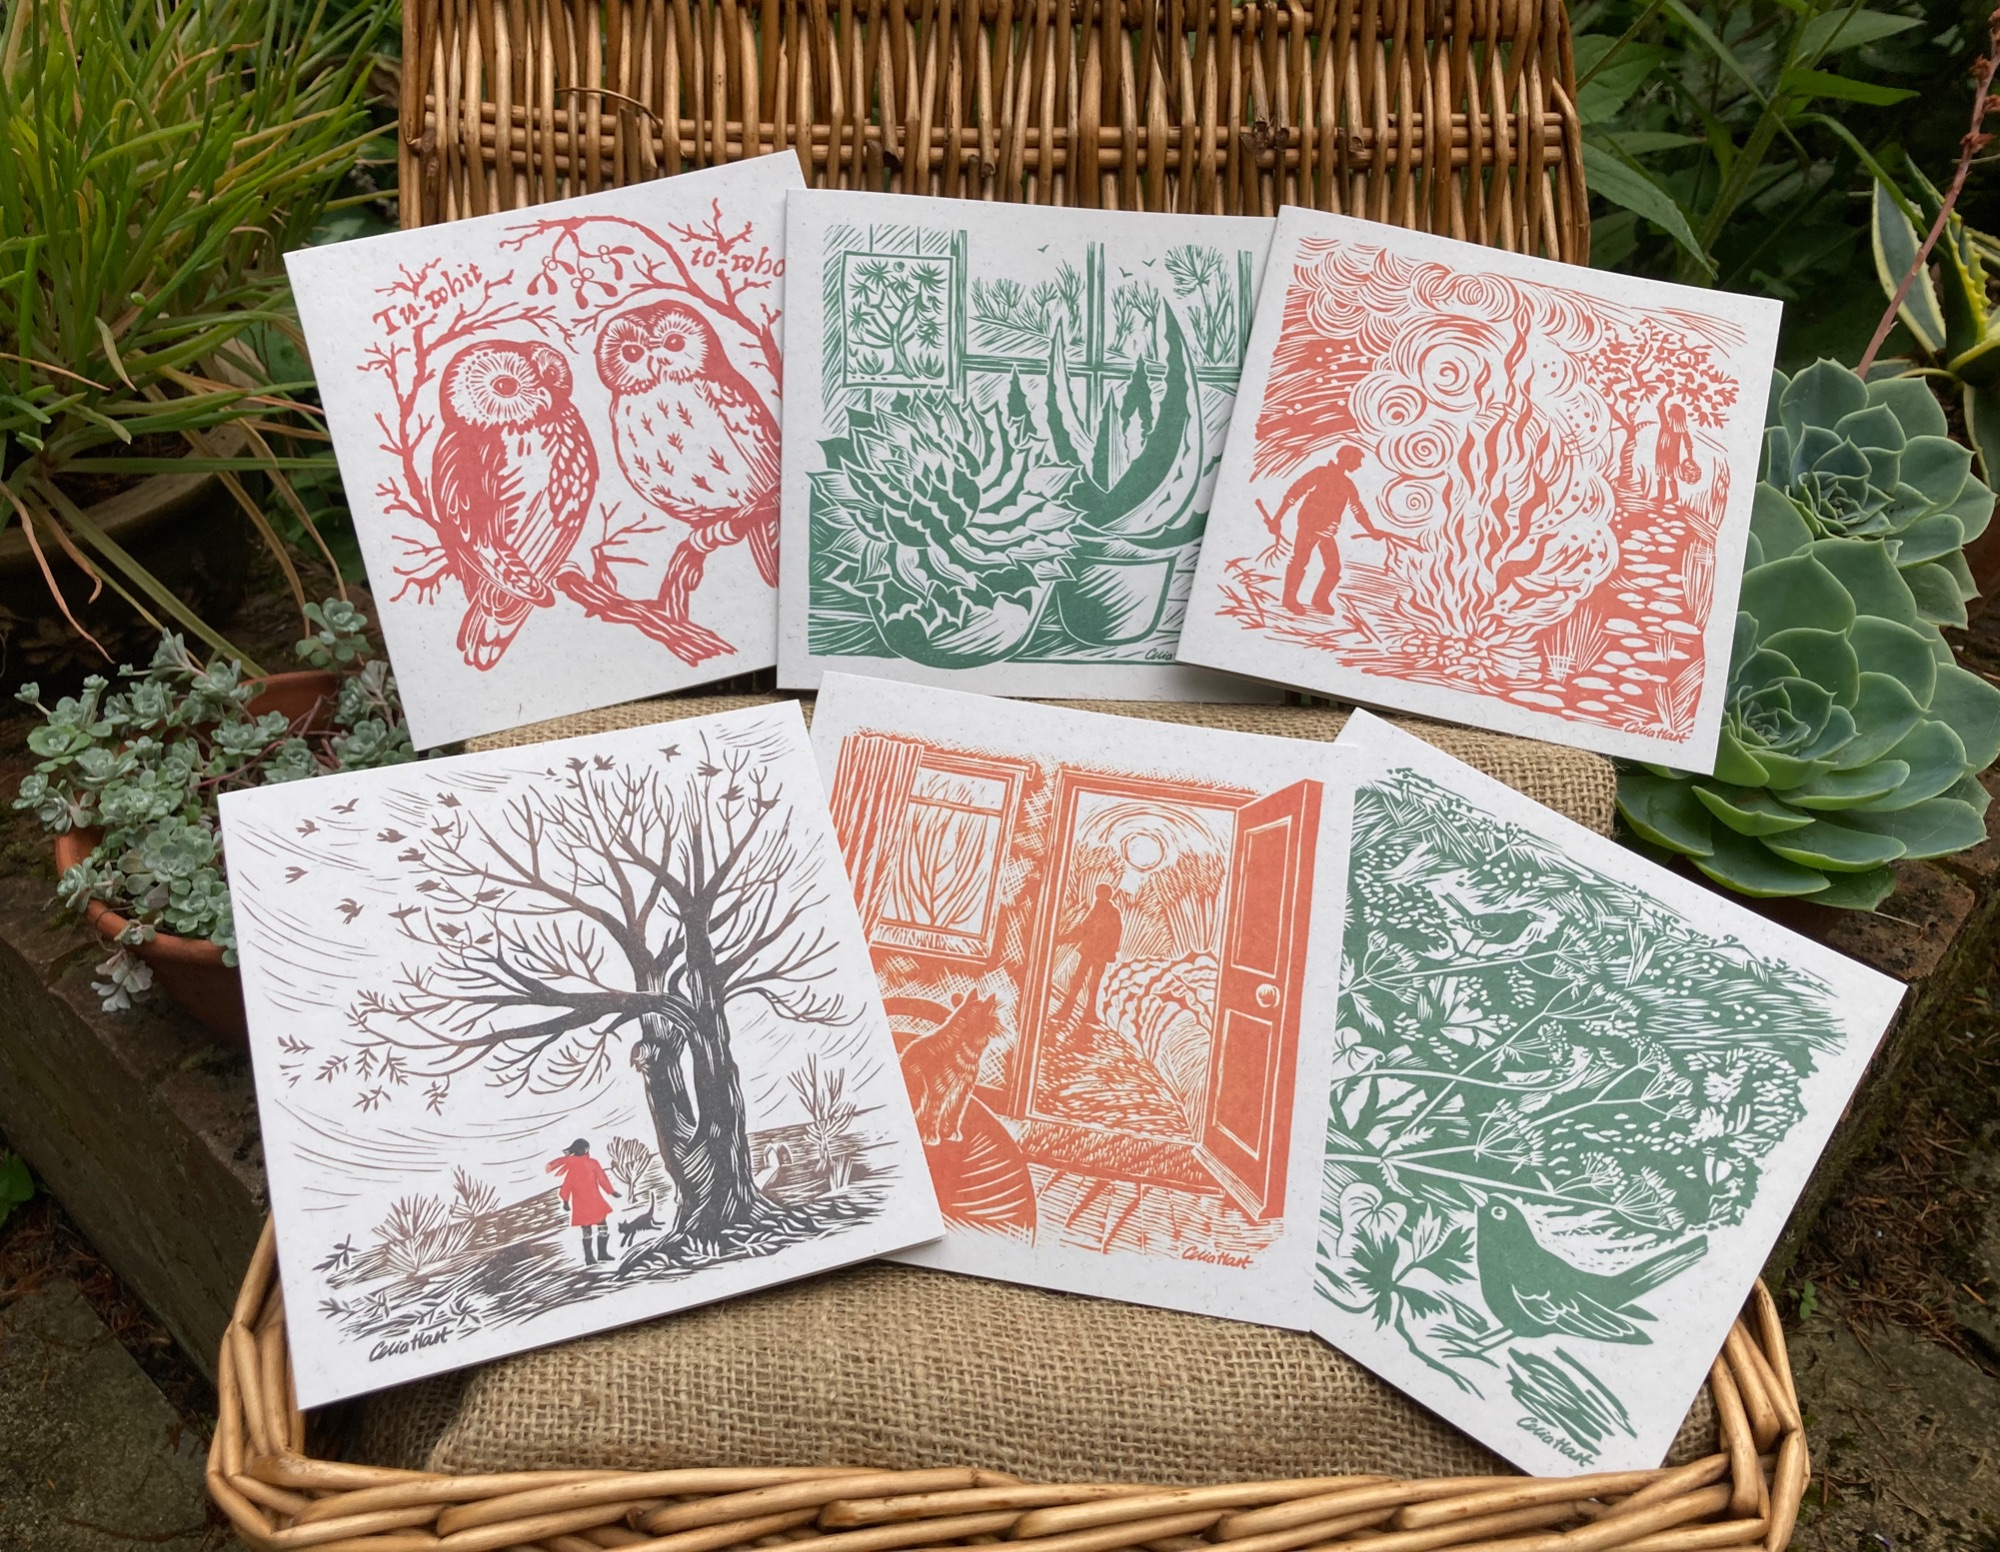 New eco-friendly cards for spring